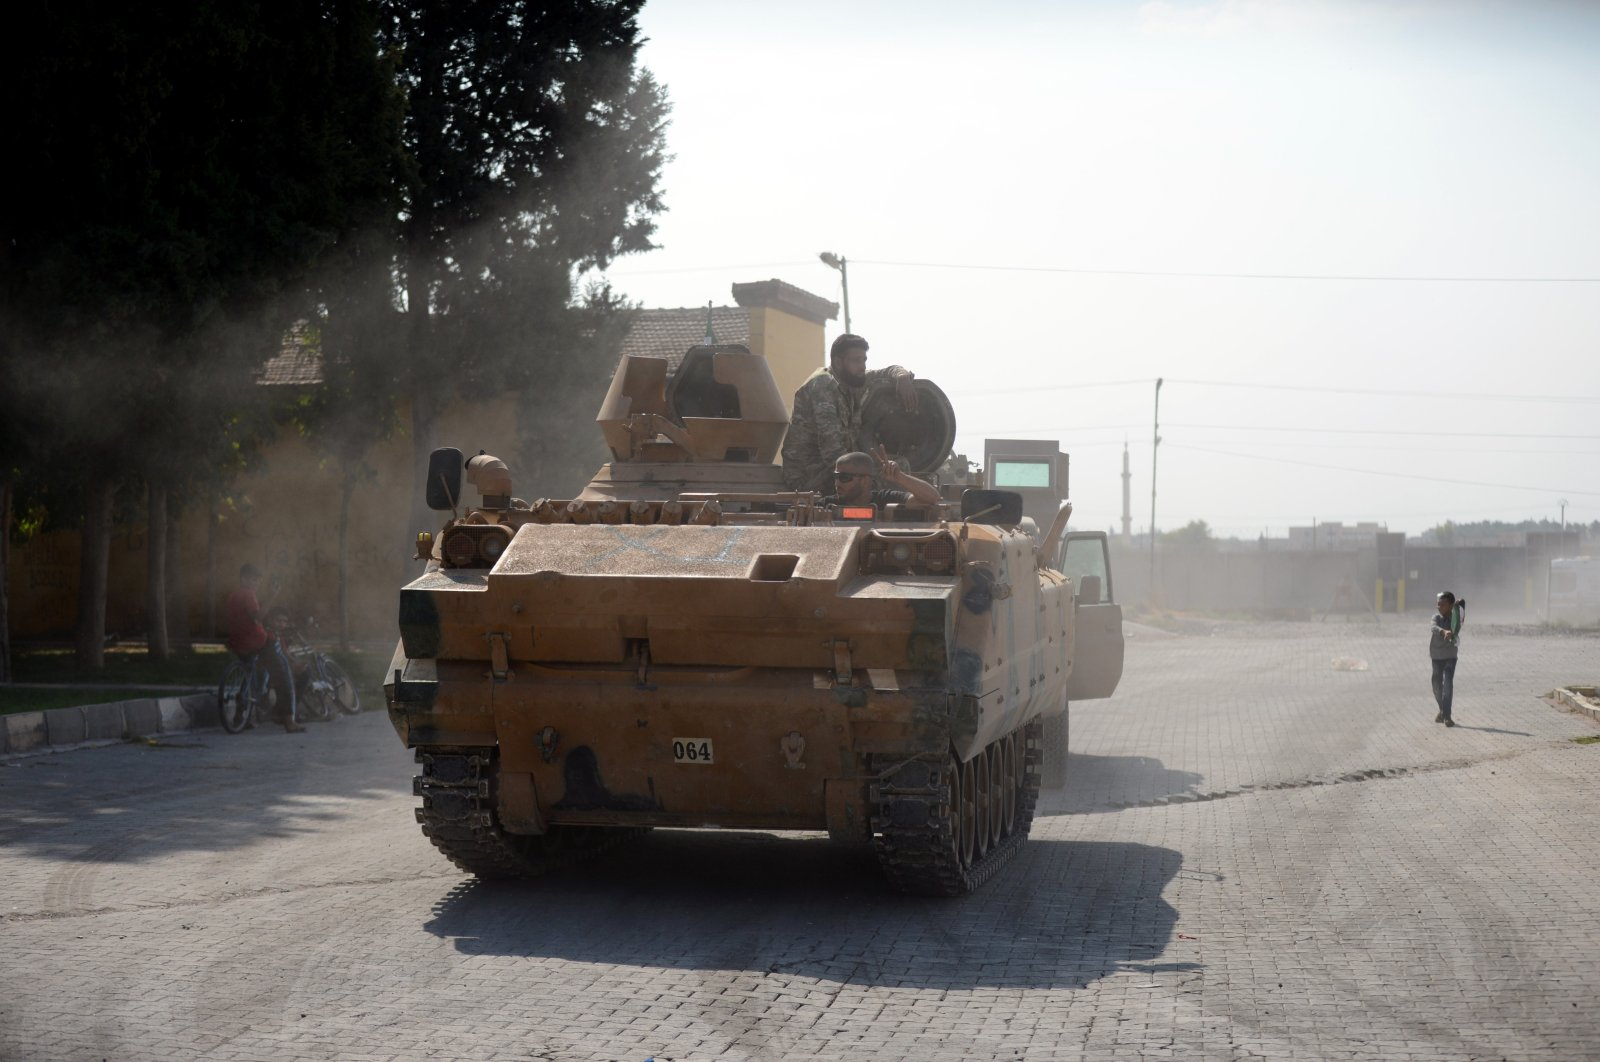 Syrian National Army soldiers patrol the streets in Tal Abyad, Syria, on October 21, 2020 (IHA File Photo)